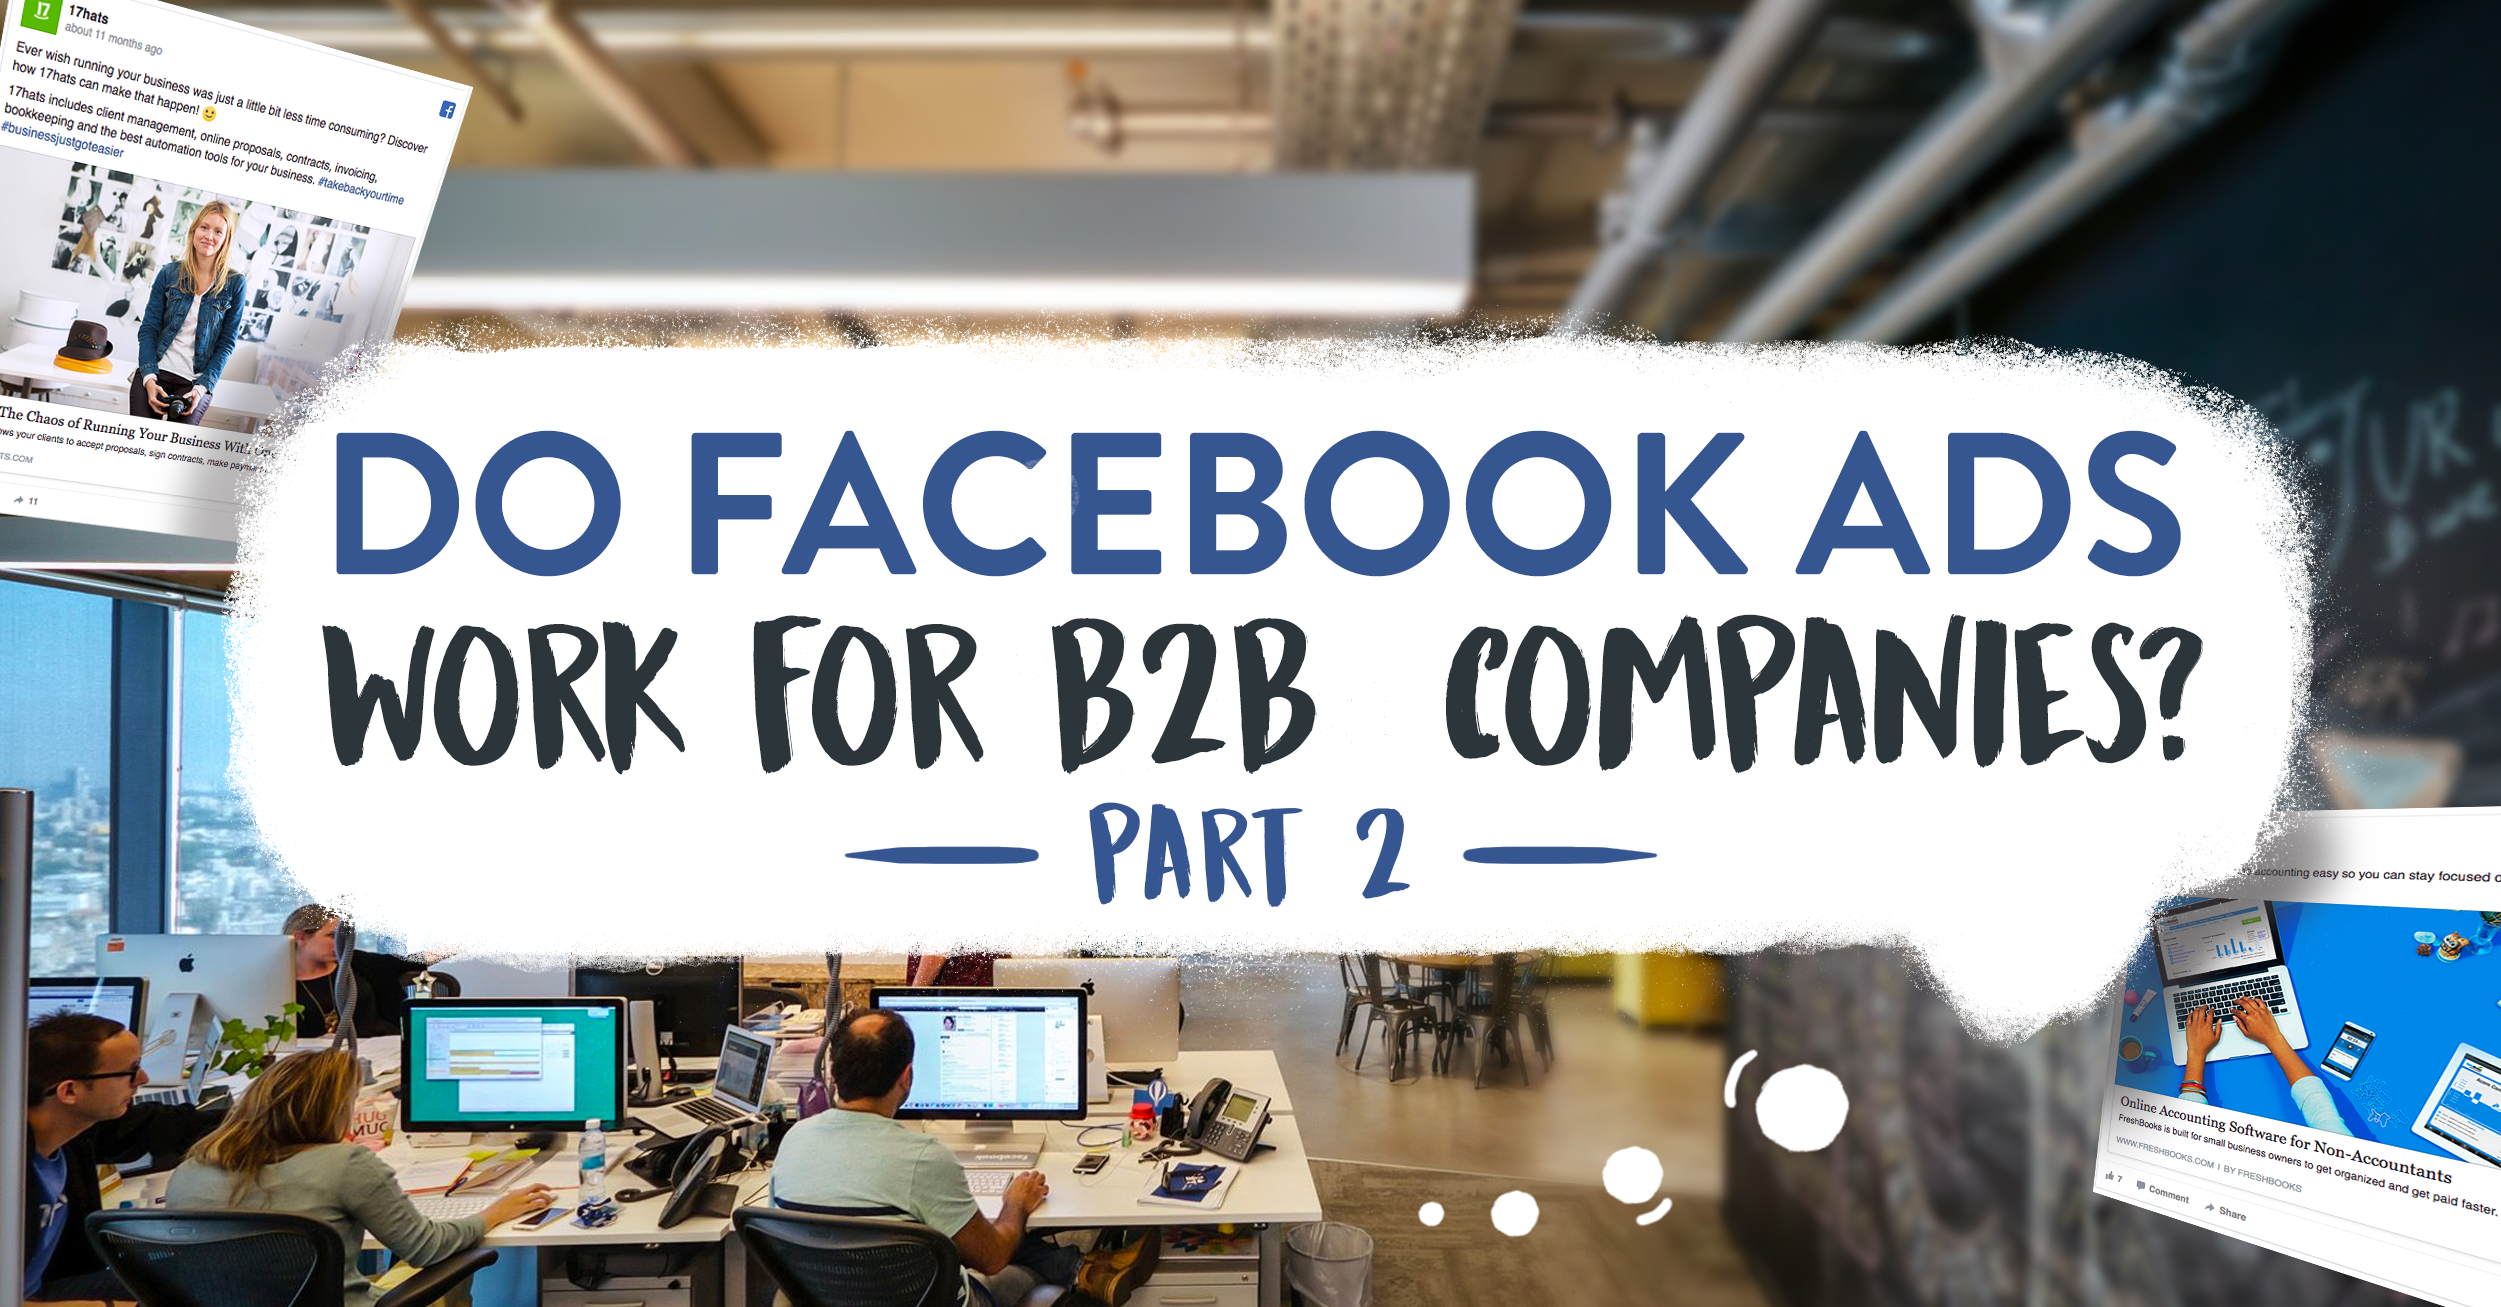 Facebook Ads for B2B Companies